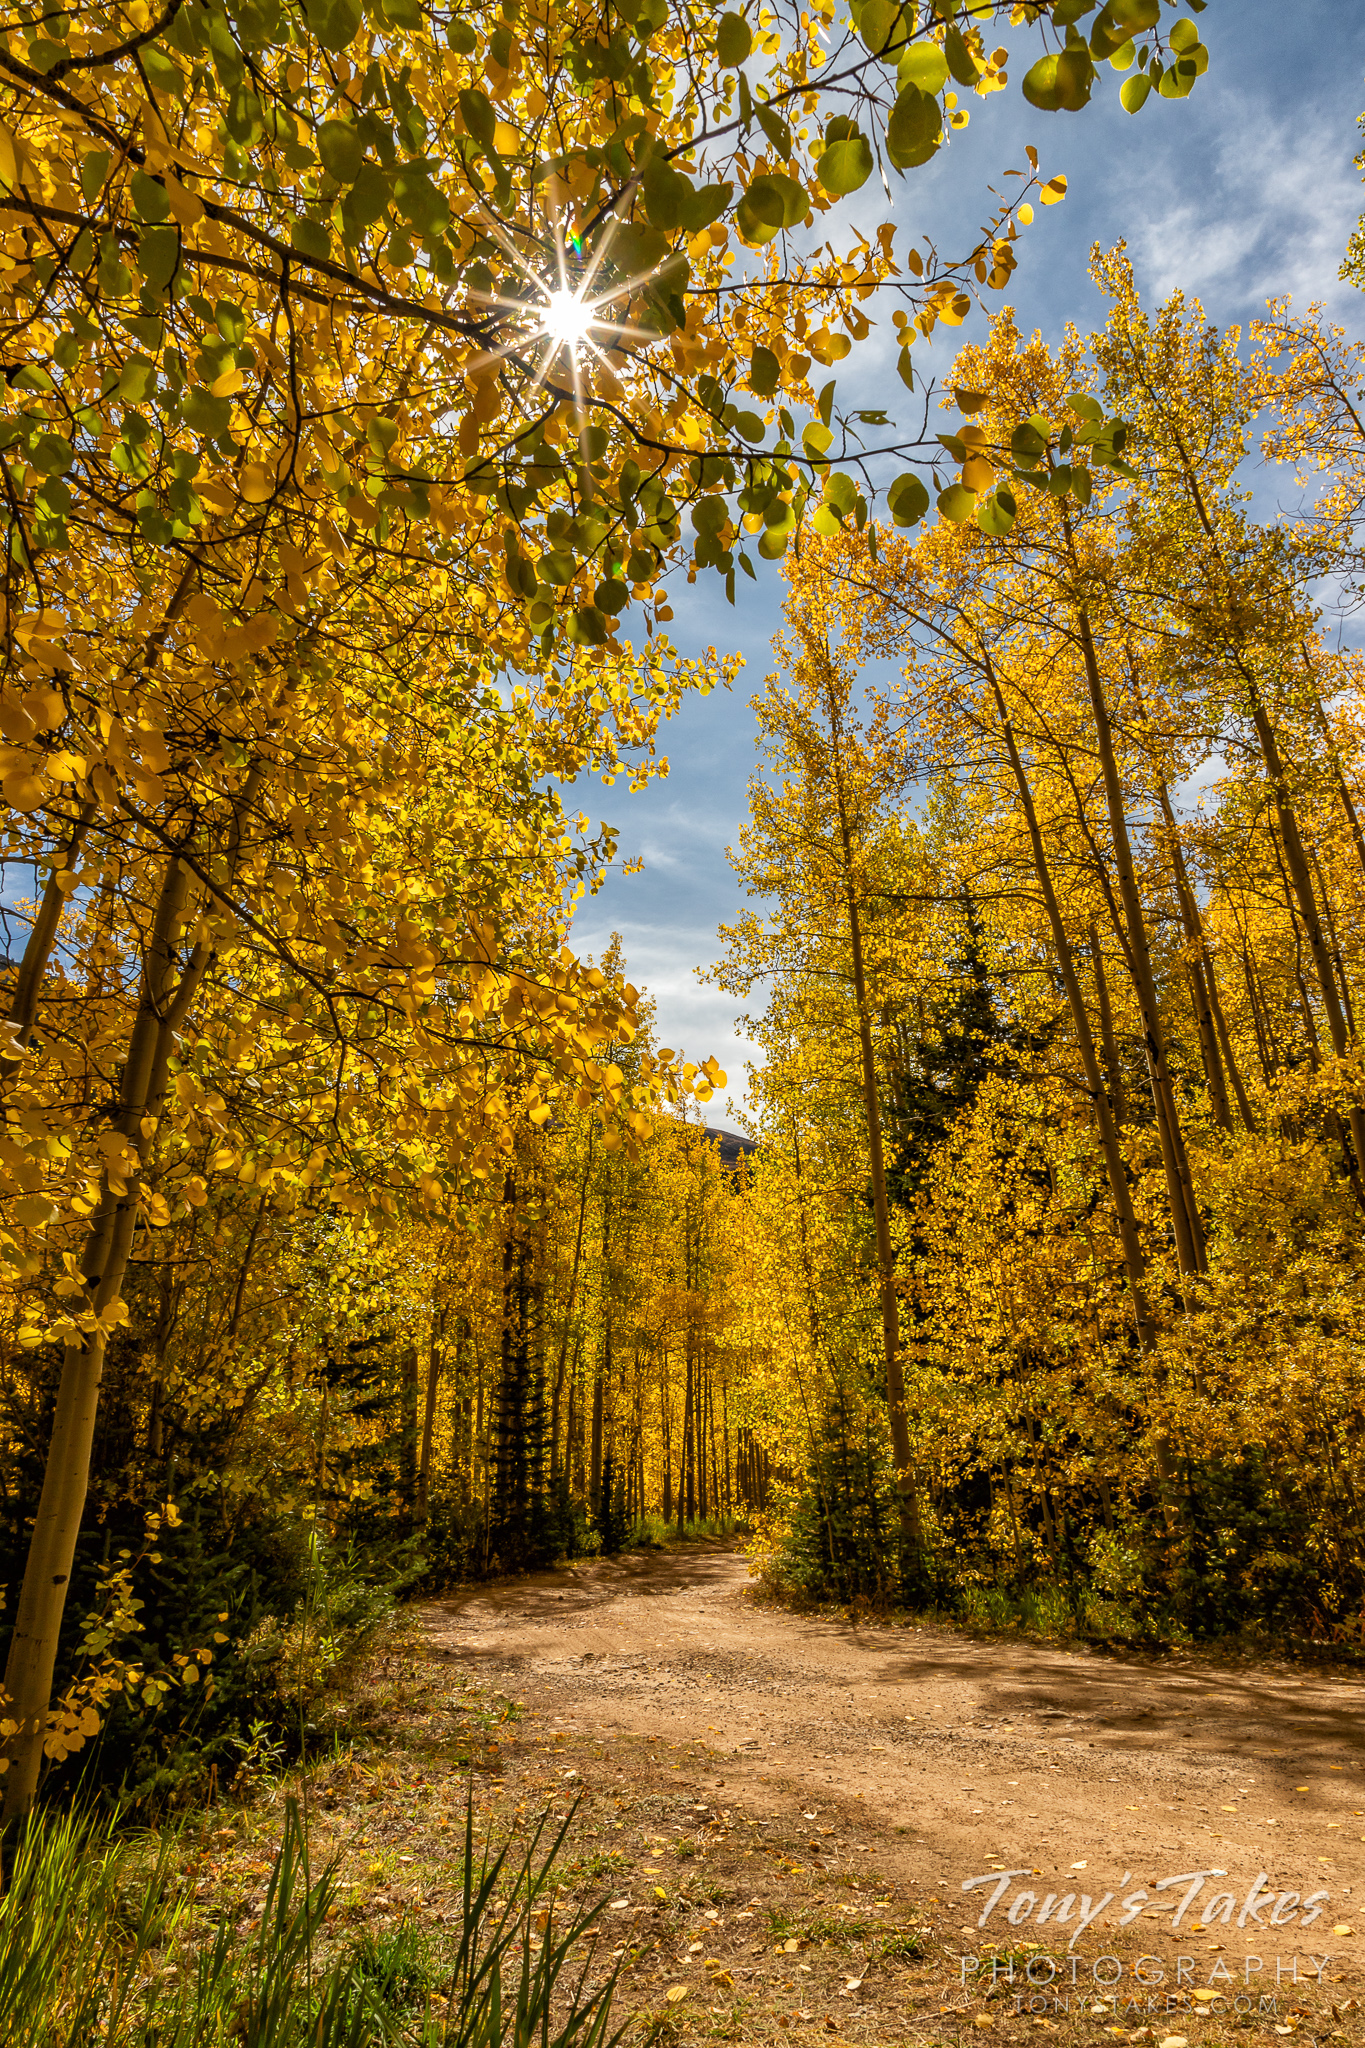 The golden road for #FallFoliageFriday!